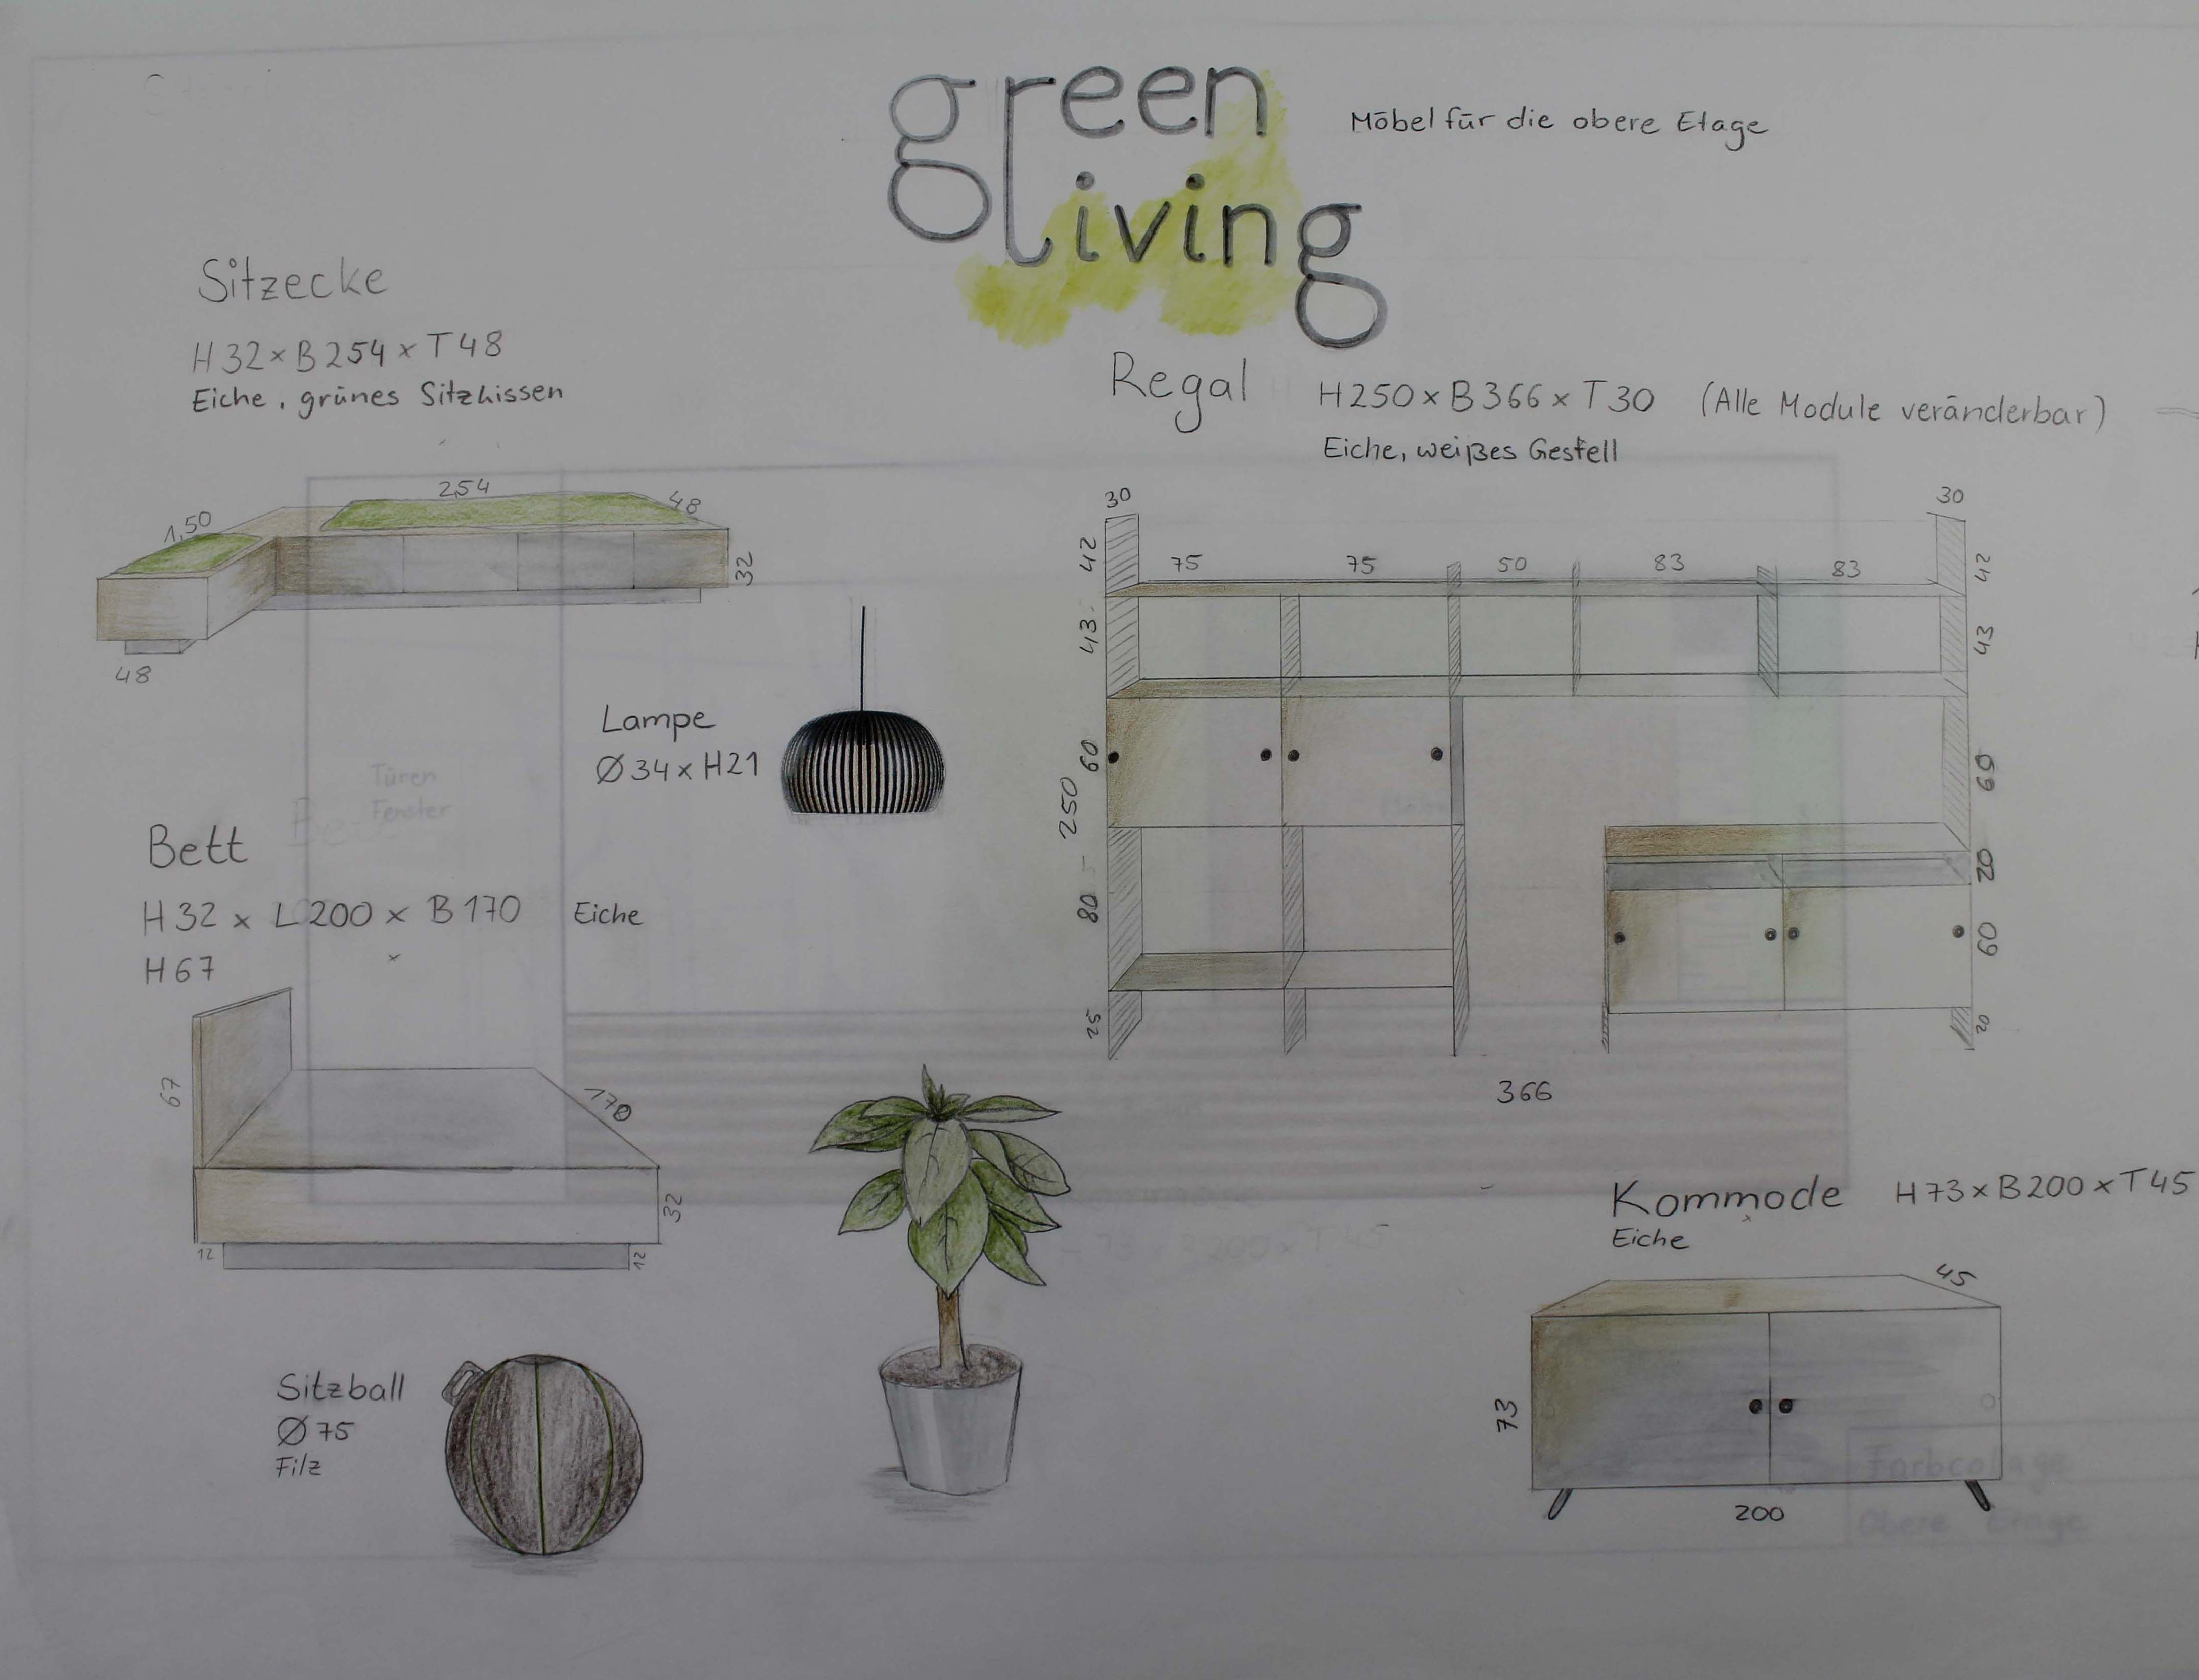 #industrialdesign #interiordesign #marcelbreuerschule #museumderdinge #greenliving #möbel #berlin